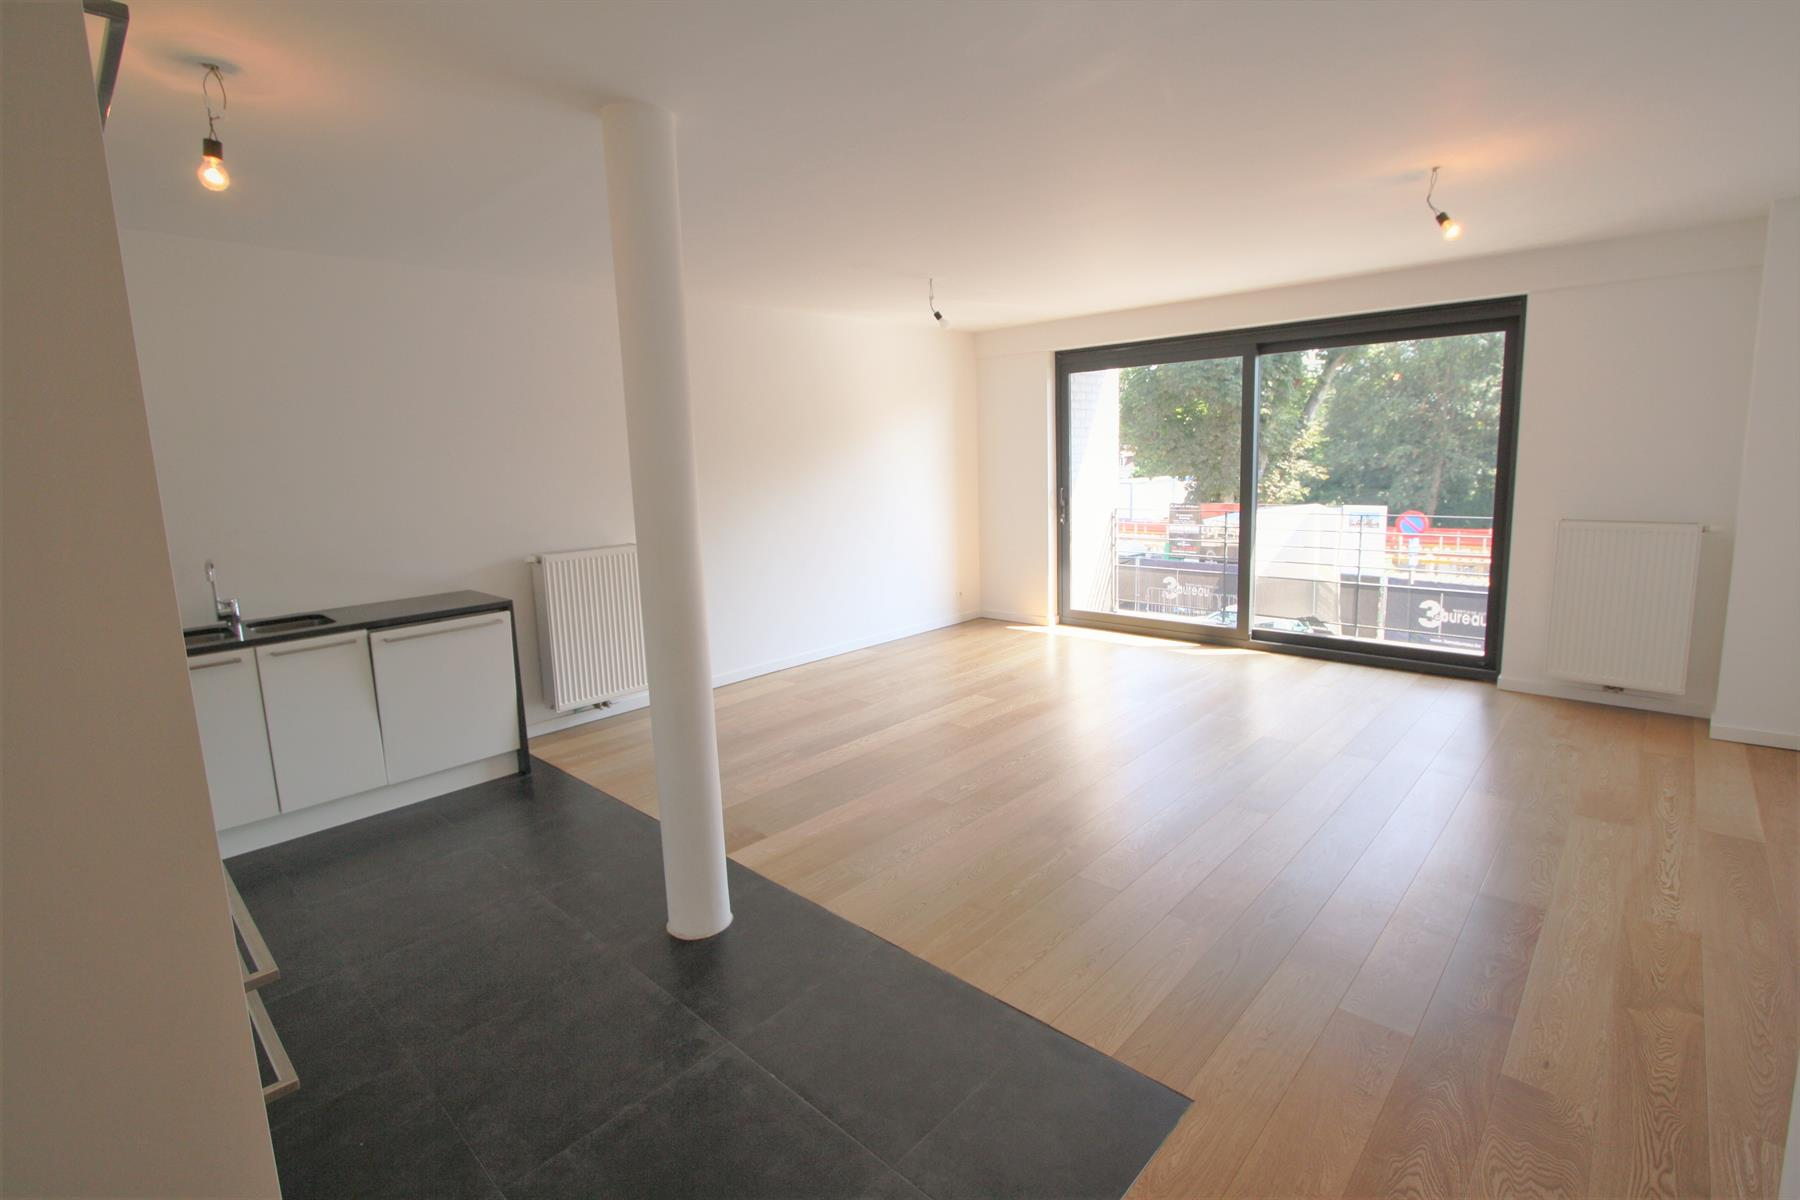 Appartement - Uccle - #4286290-1